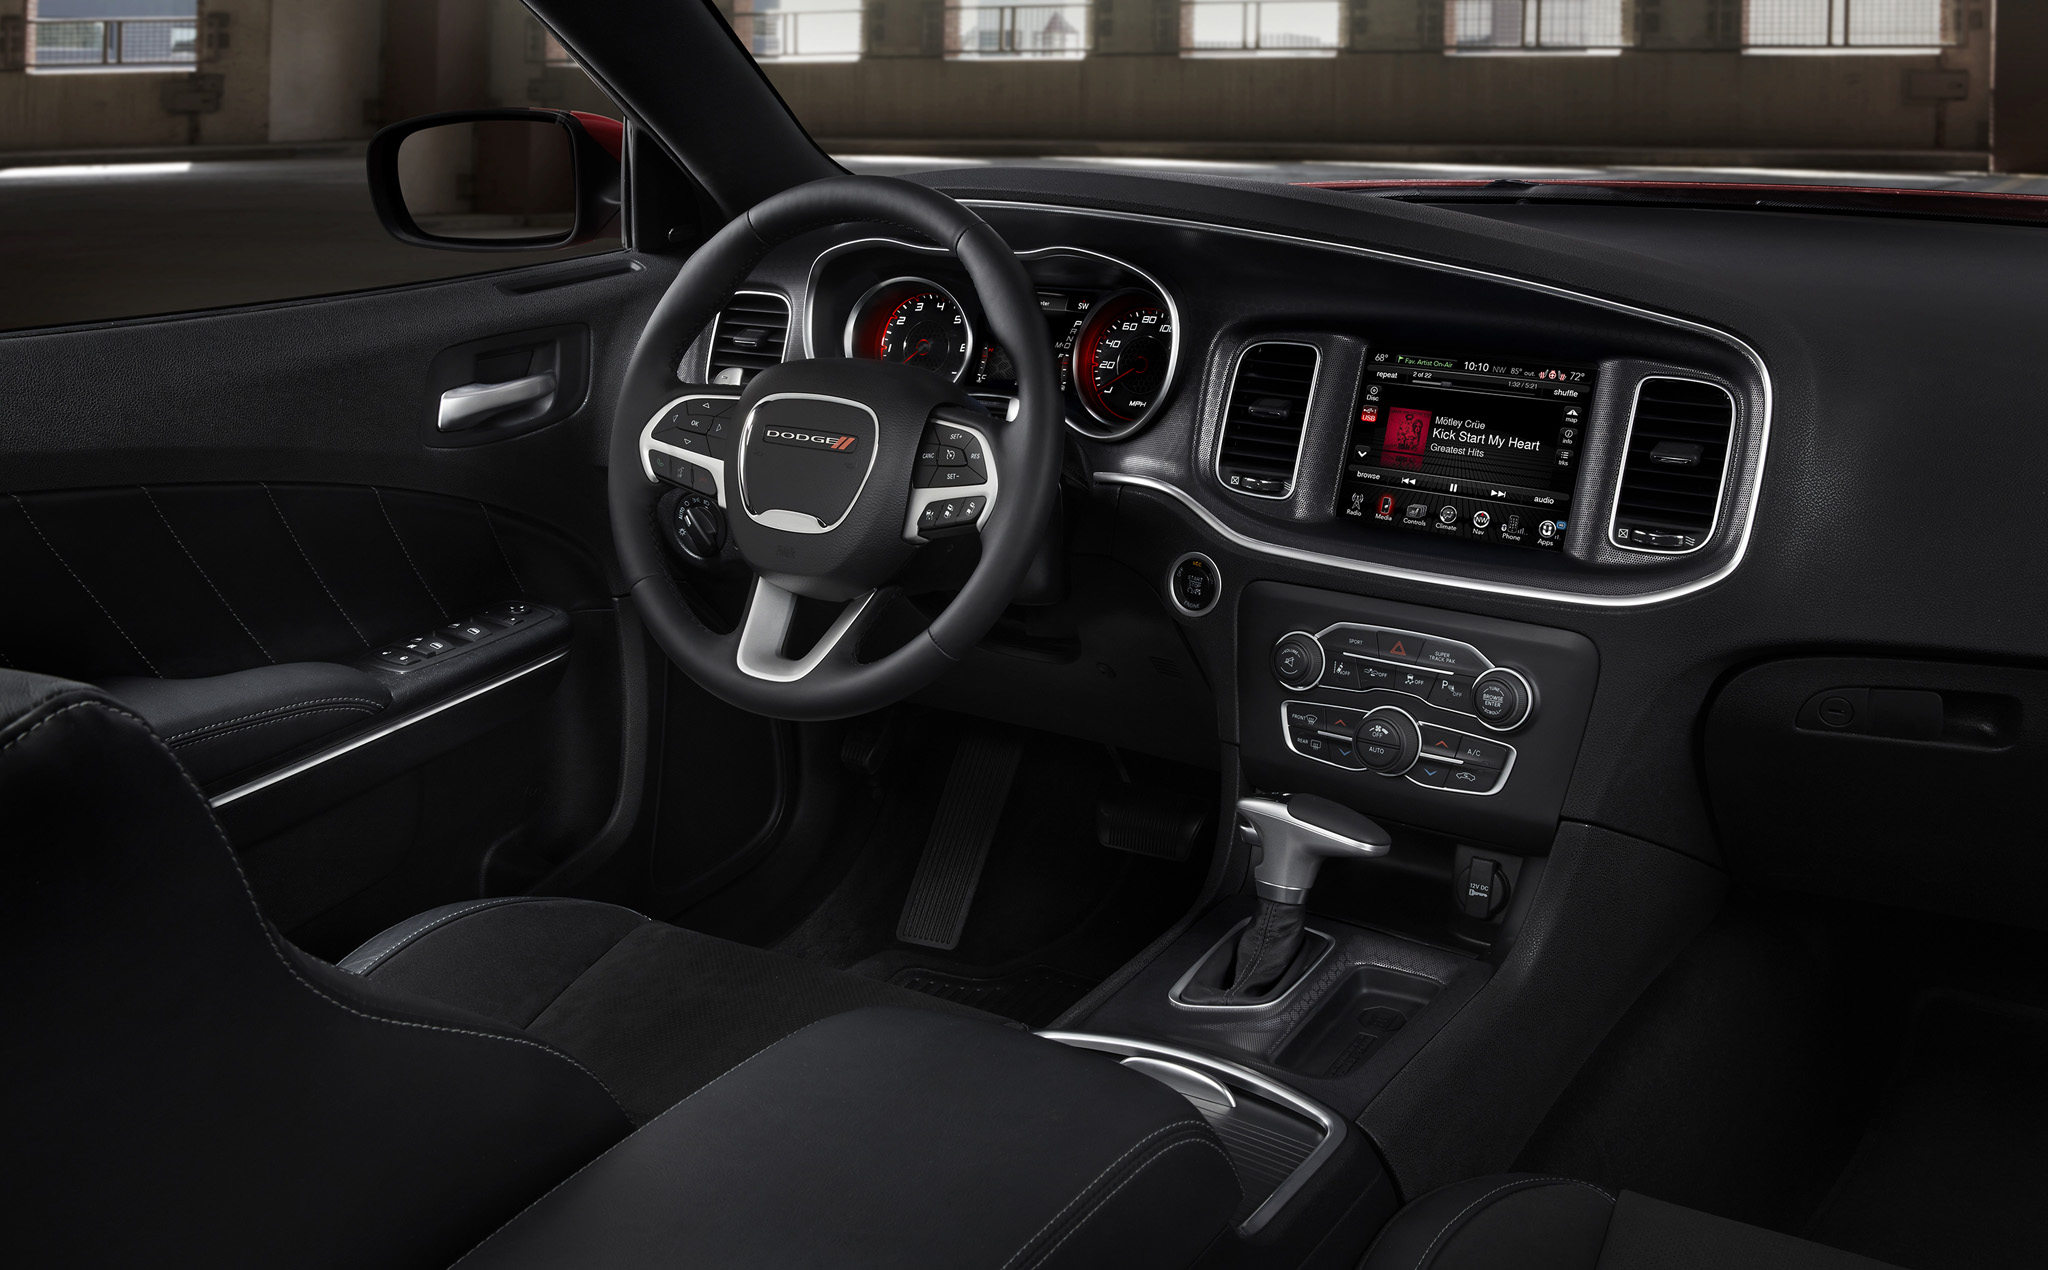 2015 Dodge Charger Front Interior Details